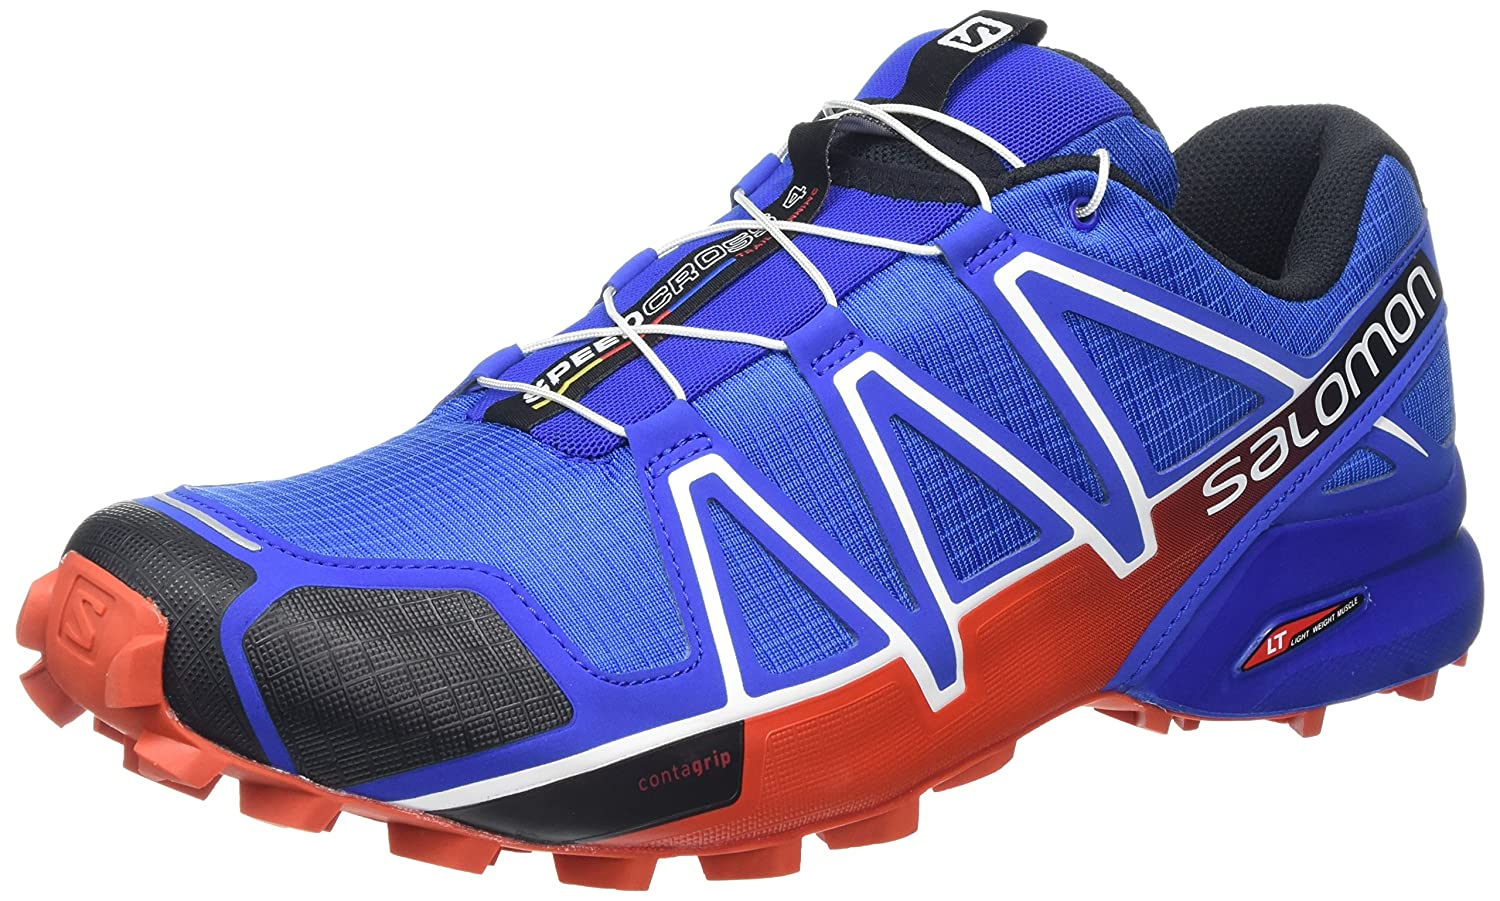 SALOMON Men s Speedcross 4 Trail Running Shoe,Blue Yonder Black Lava Orange,US 1